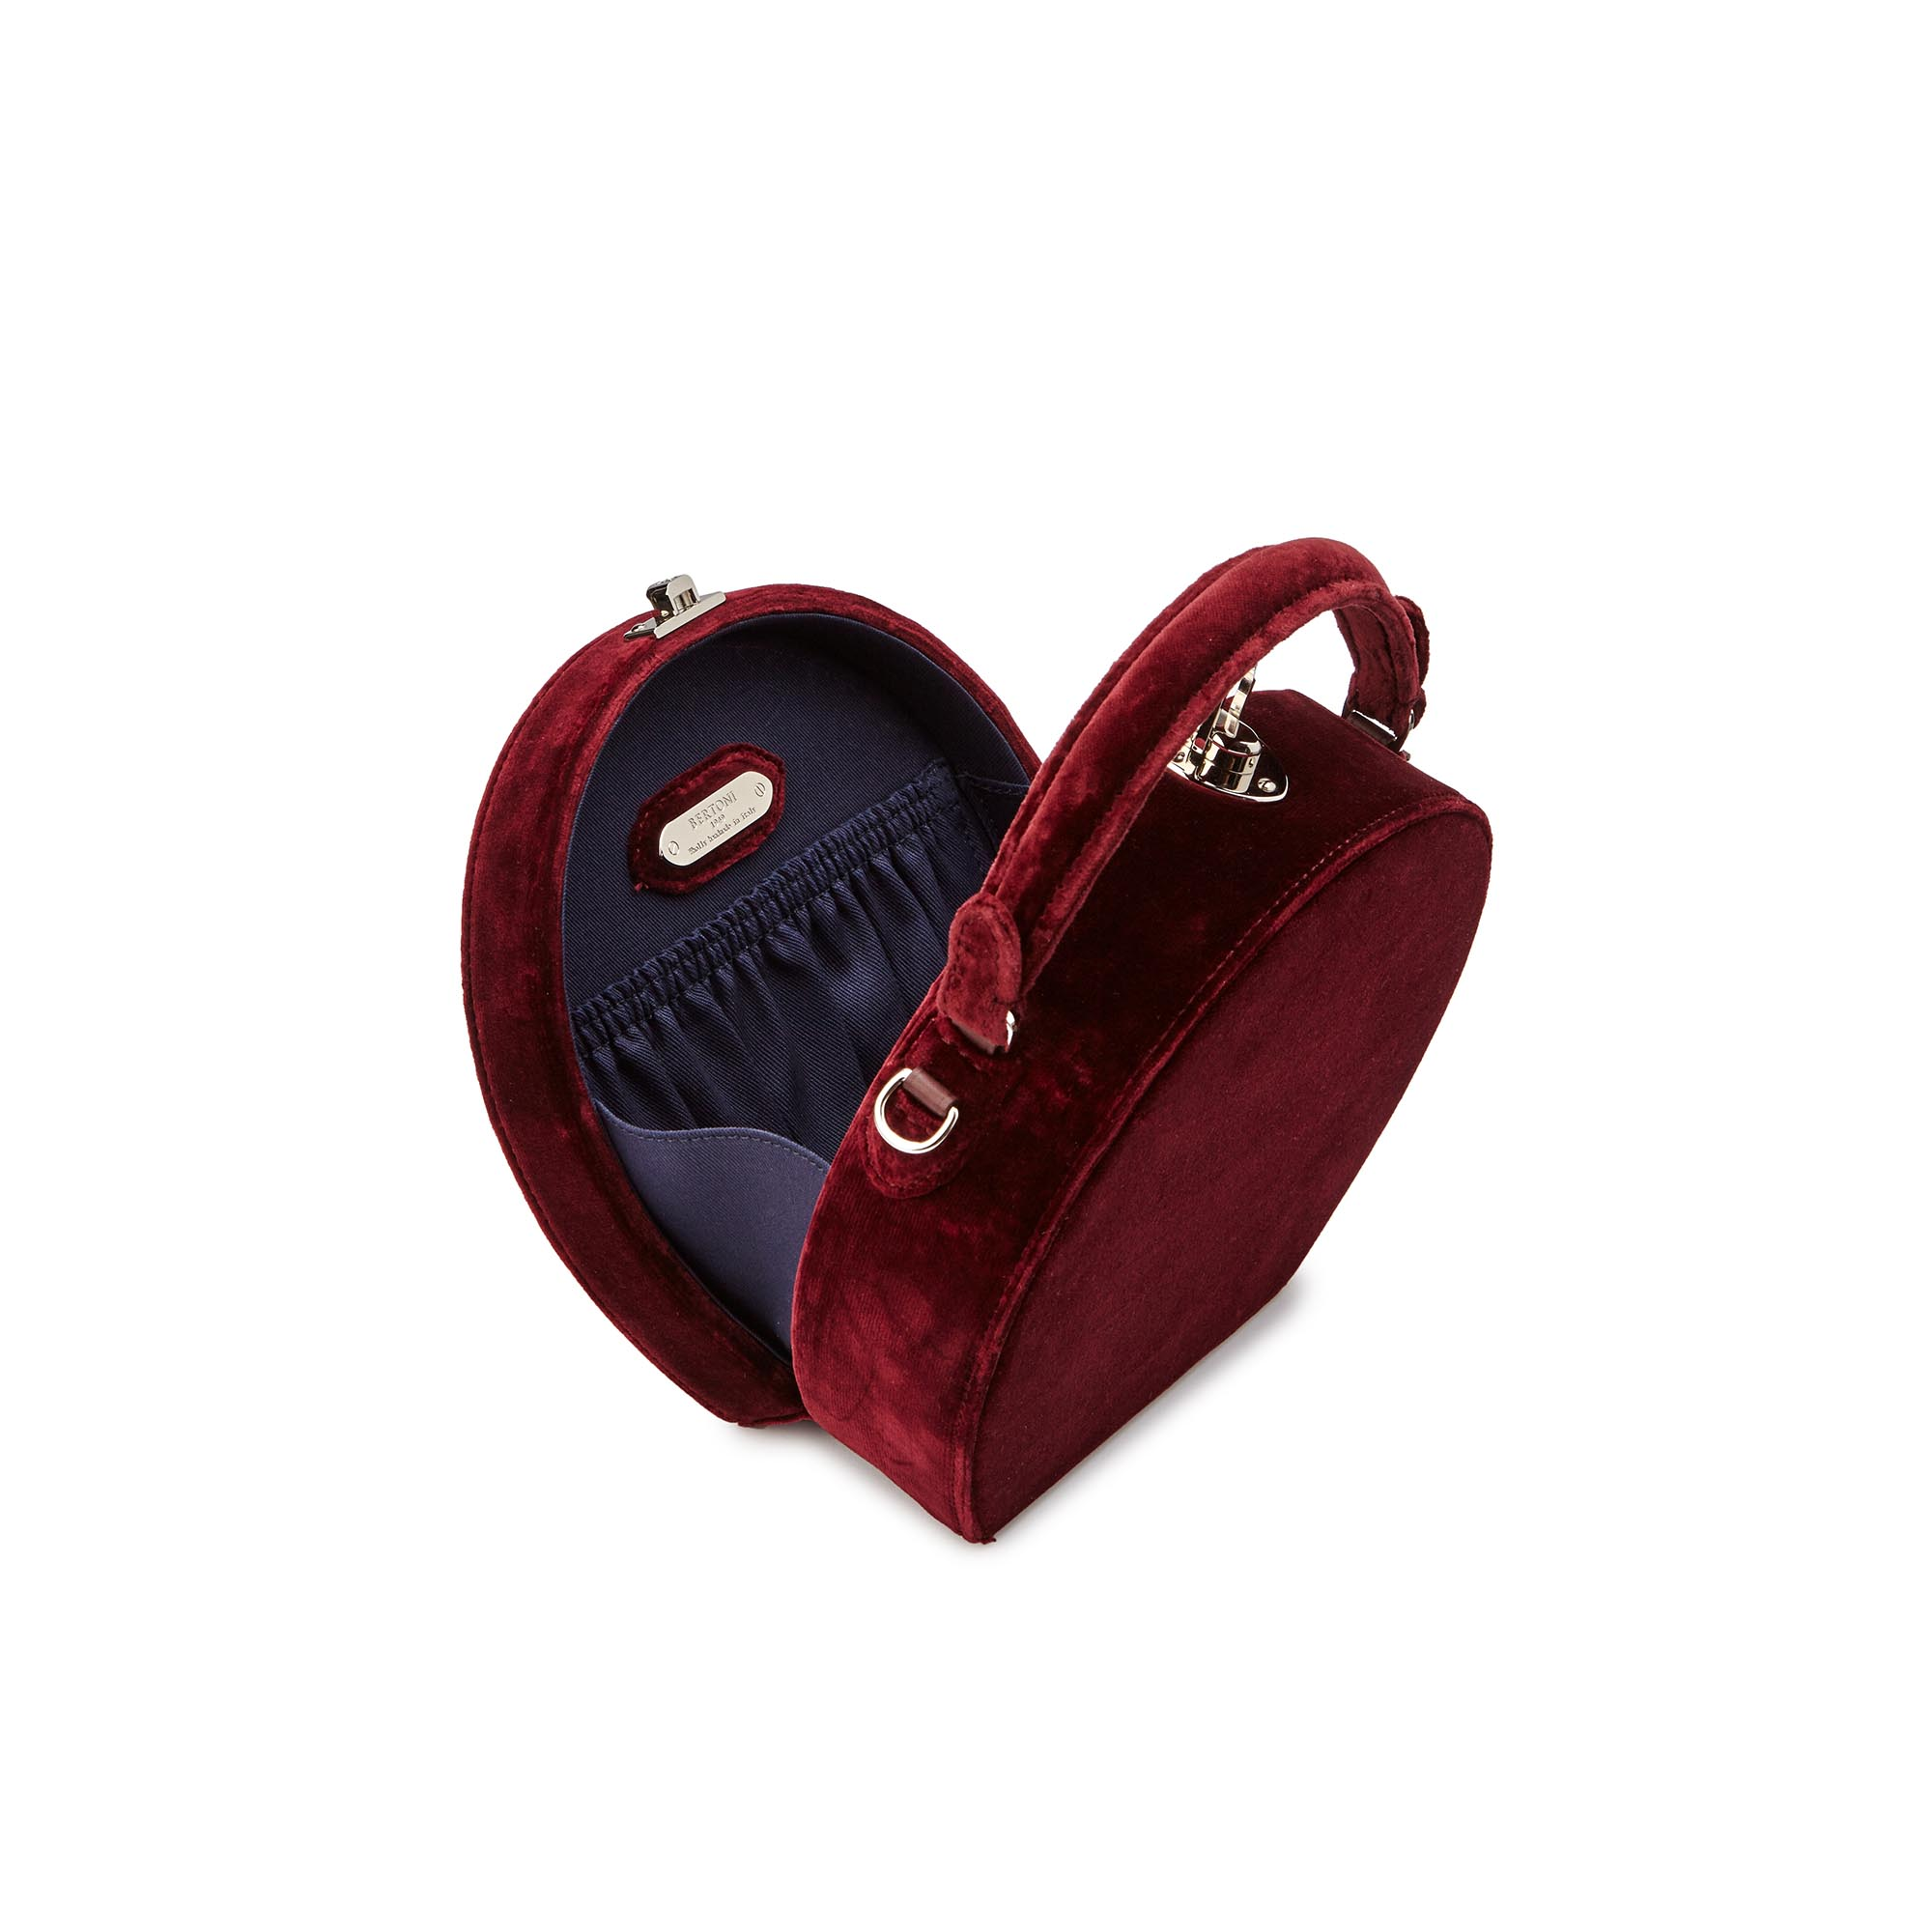 Regular-Bertoncina-bordeaux-velvet-bag-Bertoni-1949_03